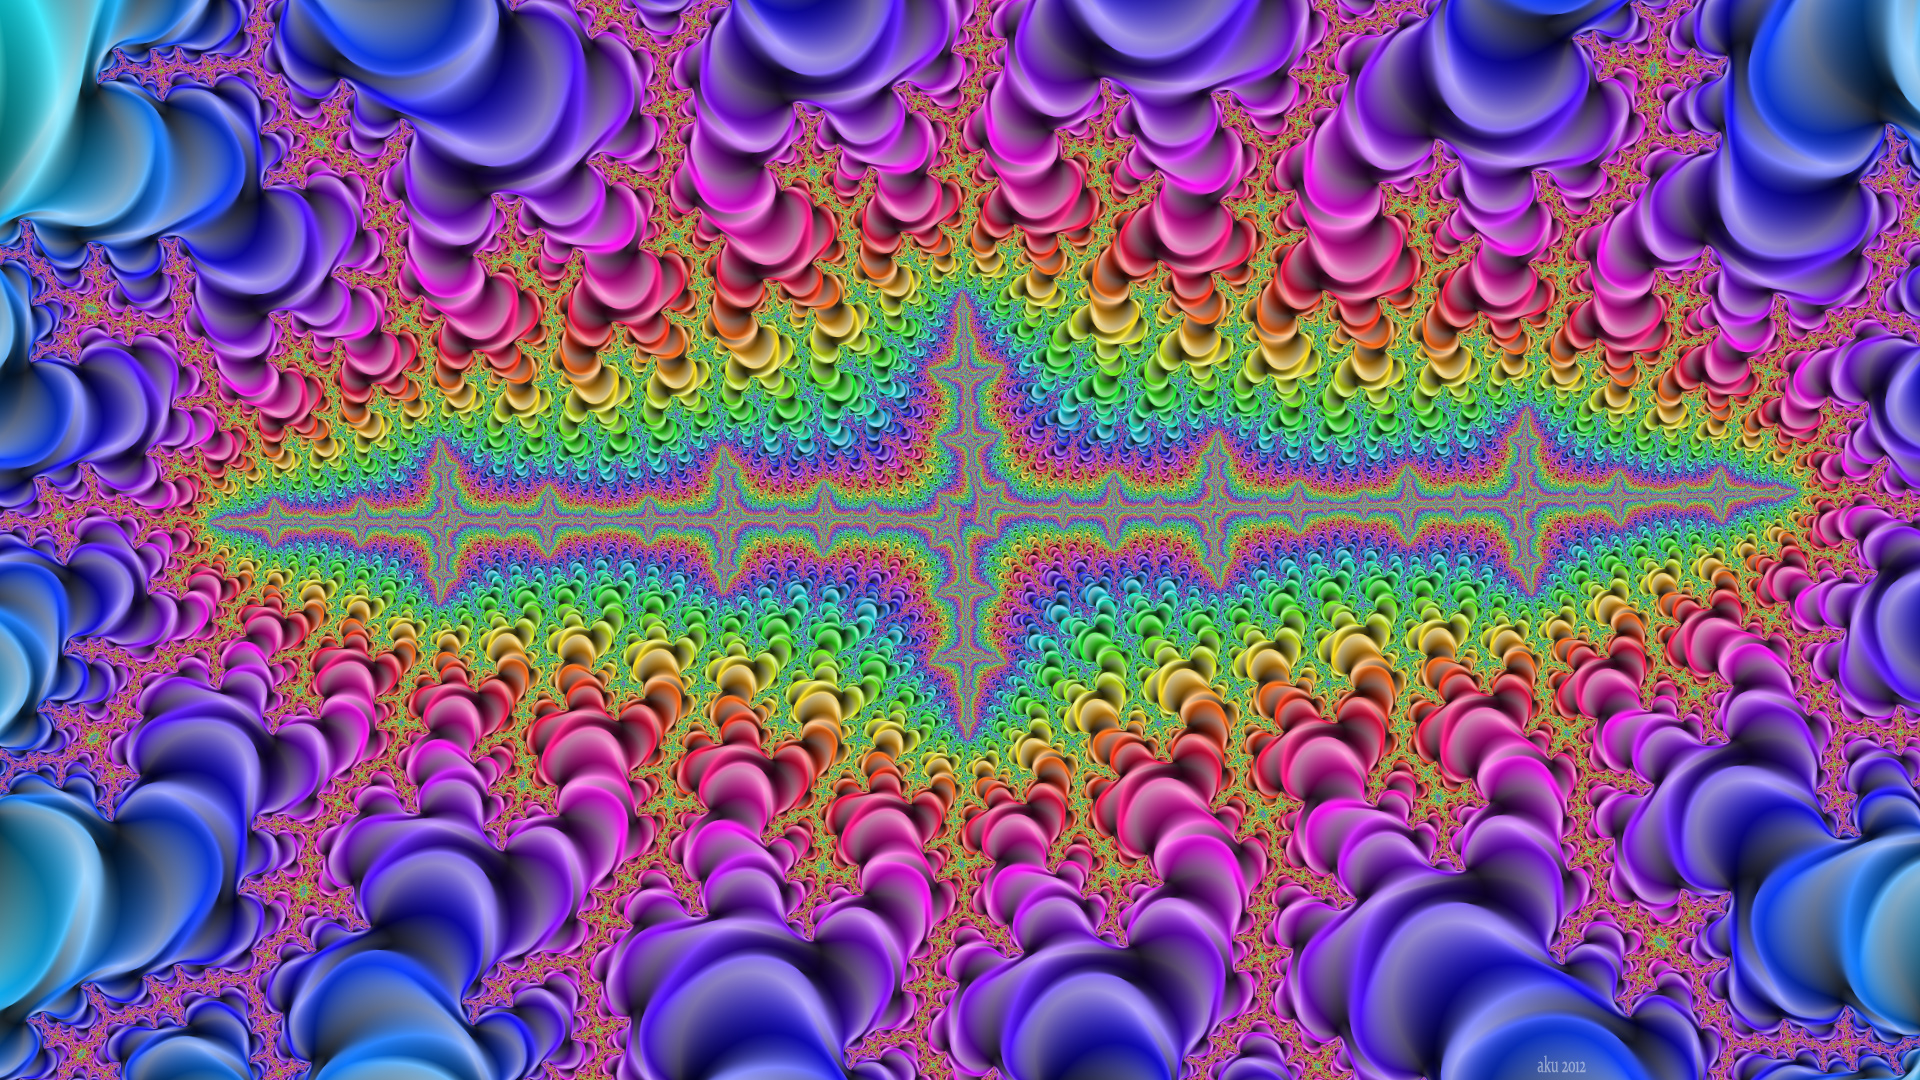 Psychedelic Computer Wallpapers Desktop Backgrounds 1920x1080